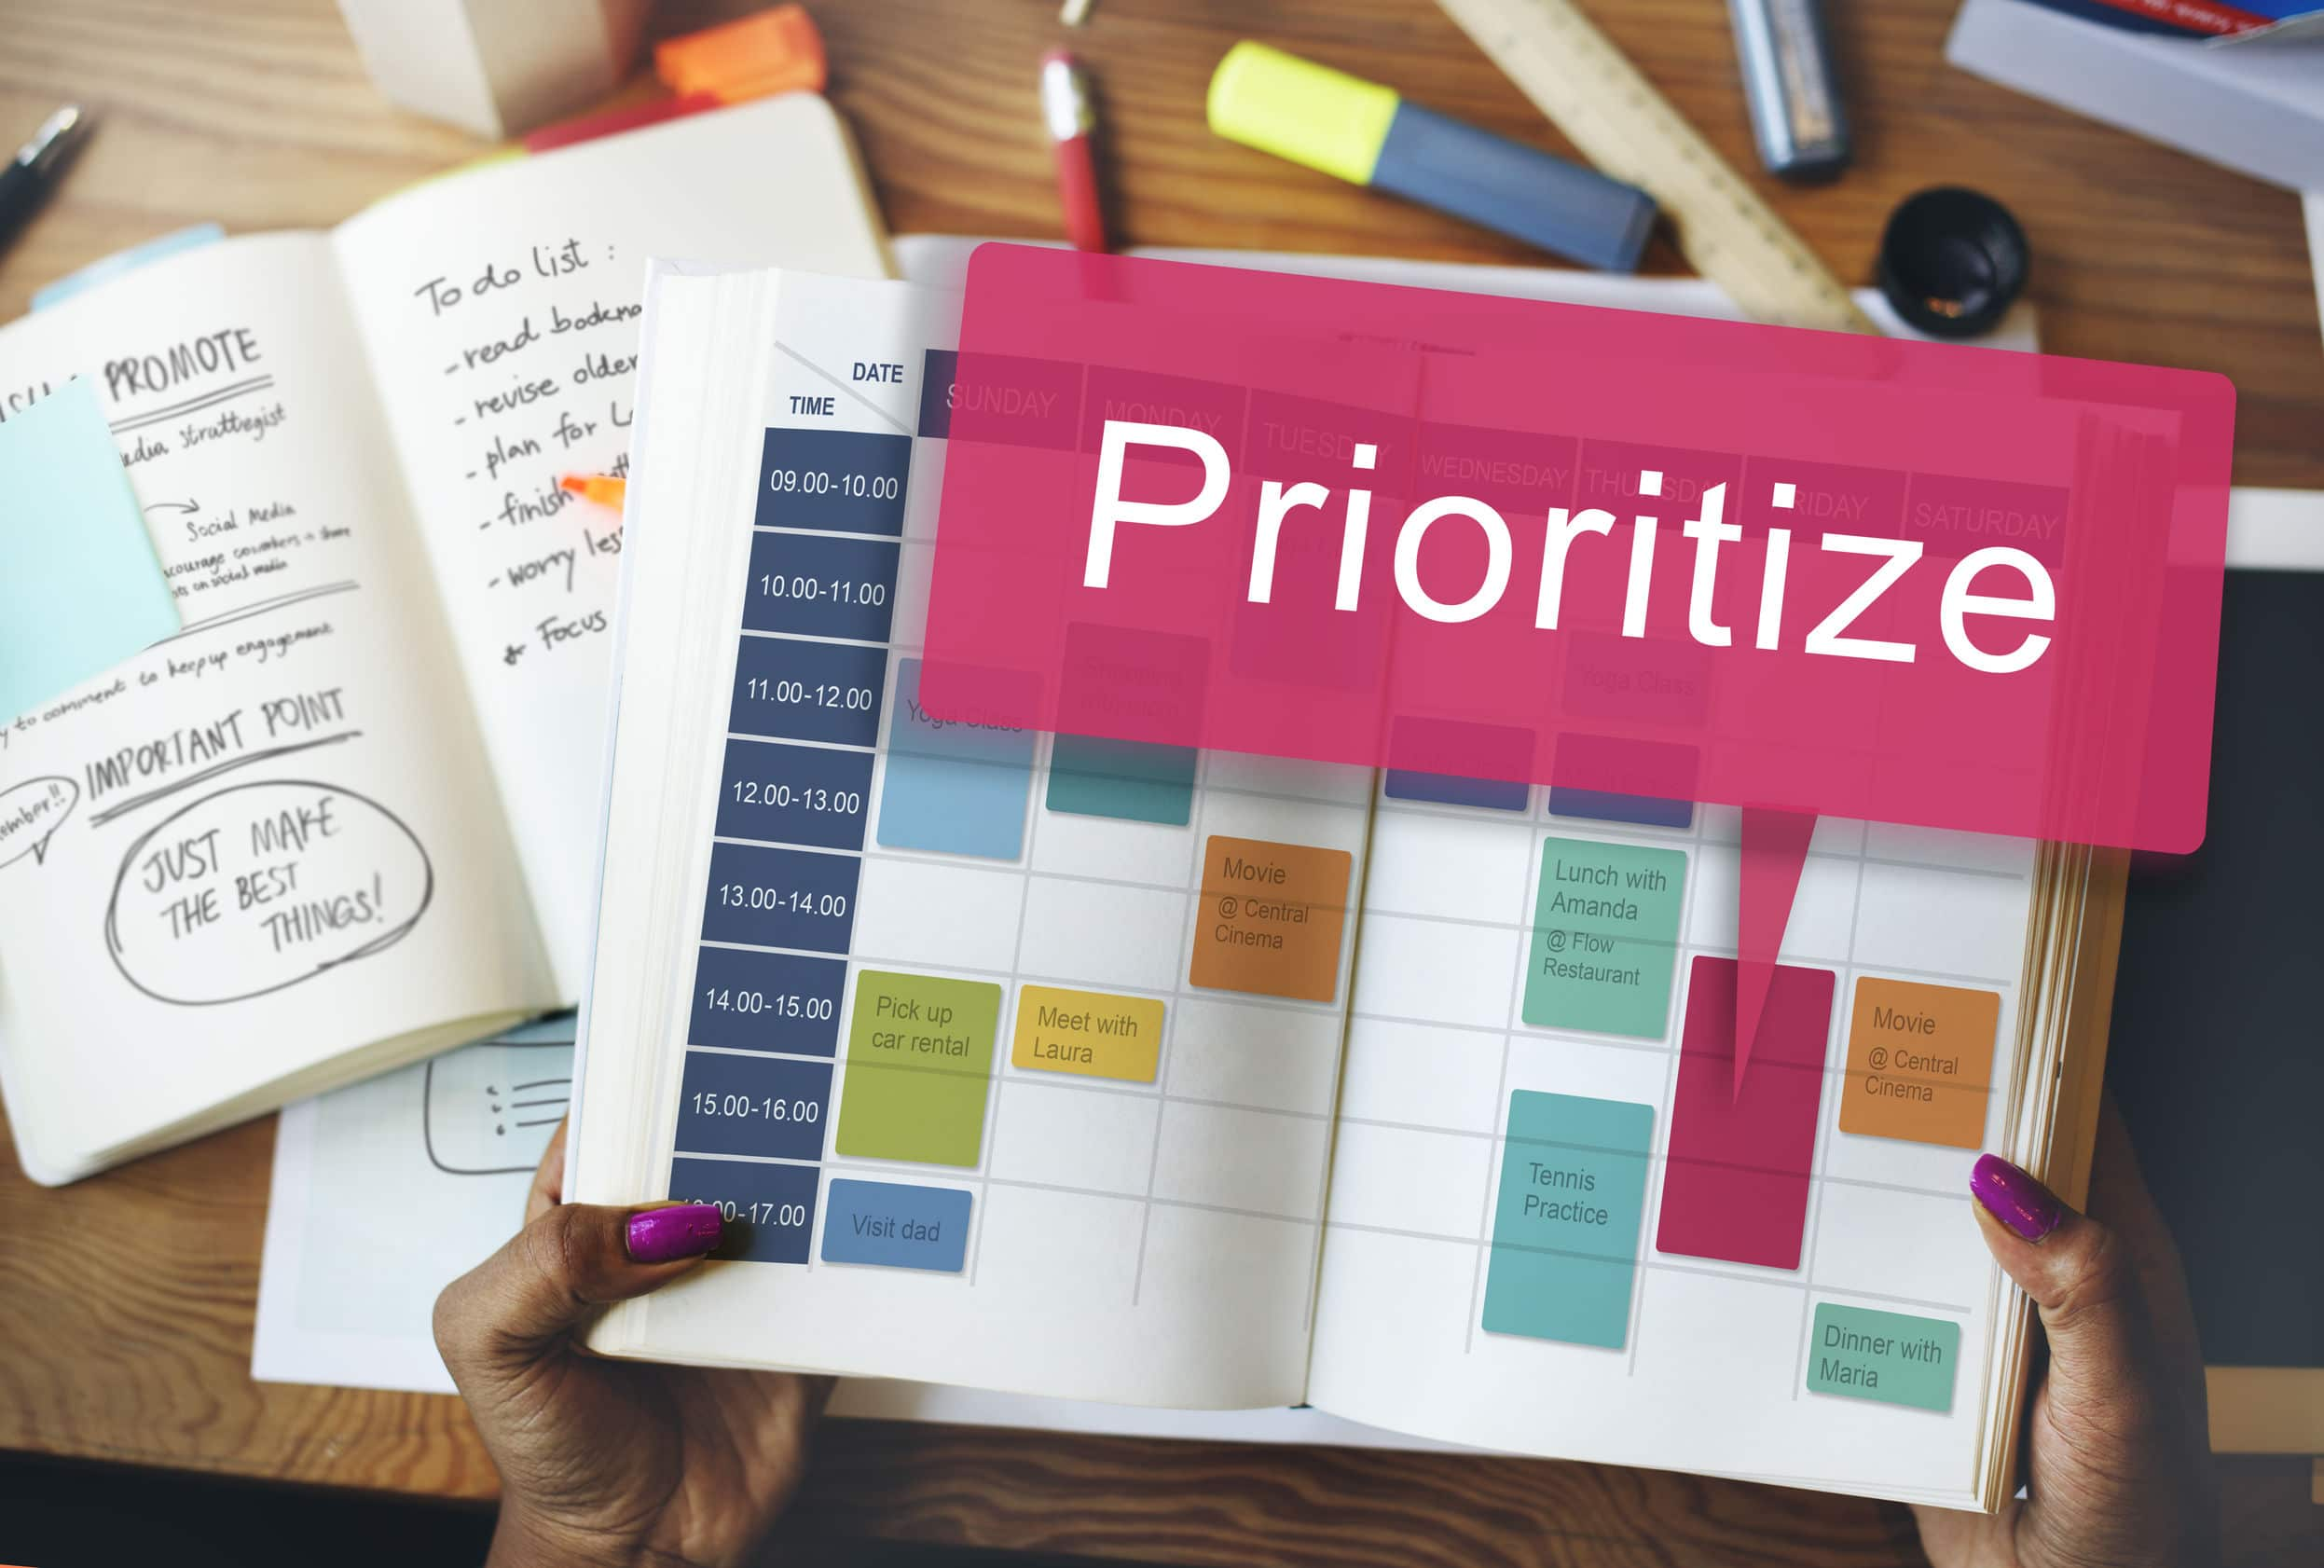 Prioritize you tasks to live a more organized life.